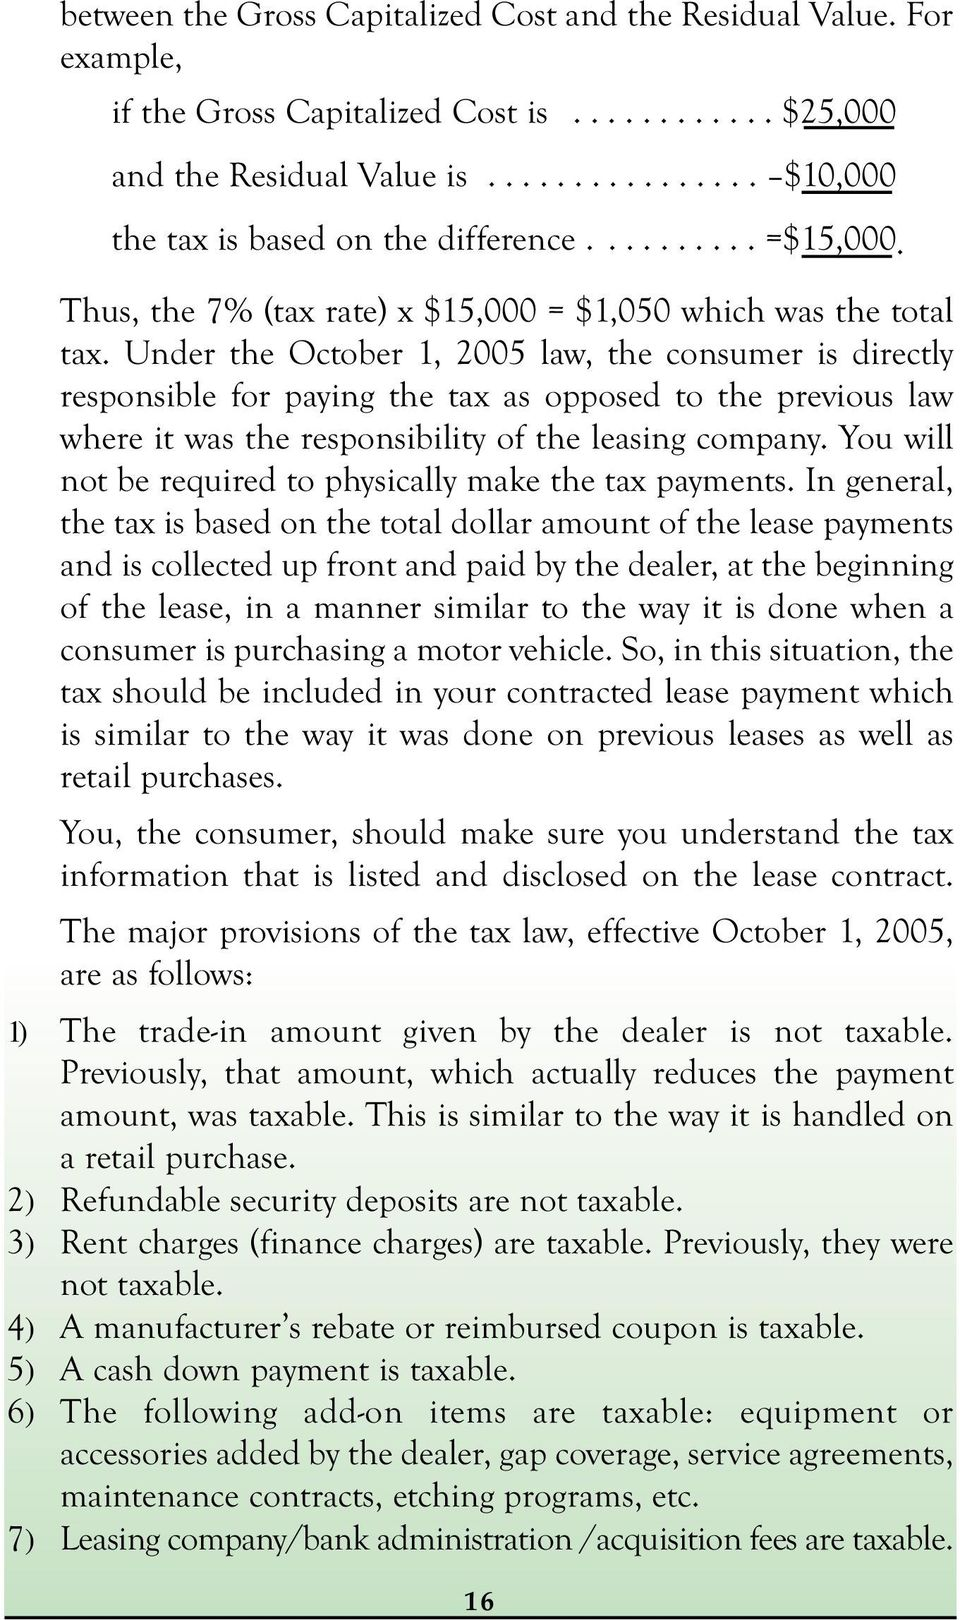 Under the October 1, 2005 law, the consumer is directly responsible for paying the tax as opposed to the previous law where it was the responsibility of the leasing company.